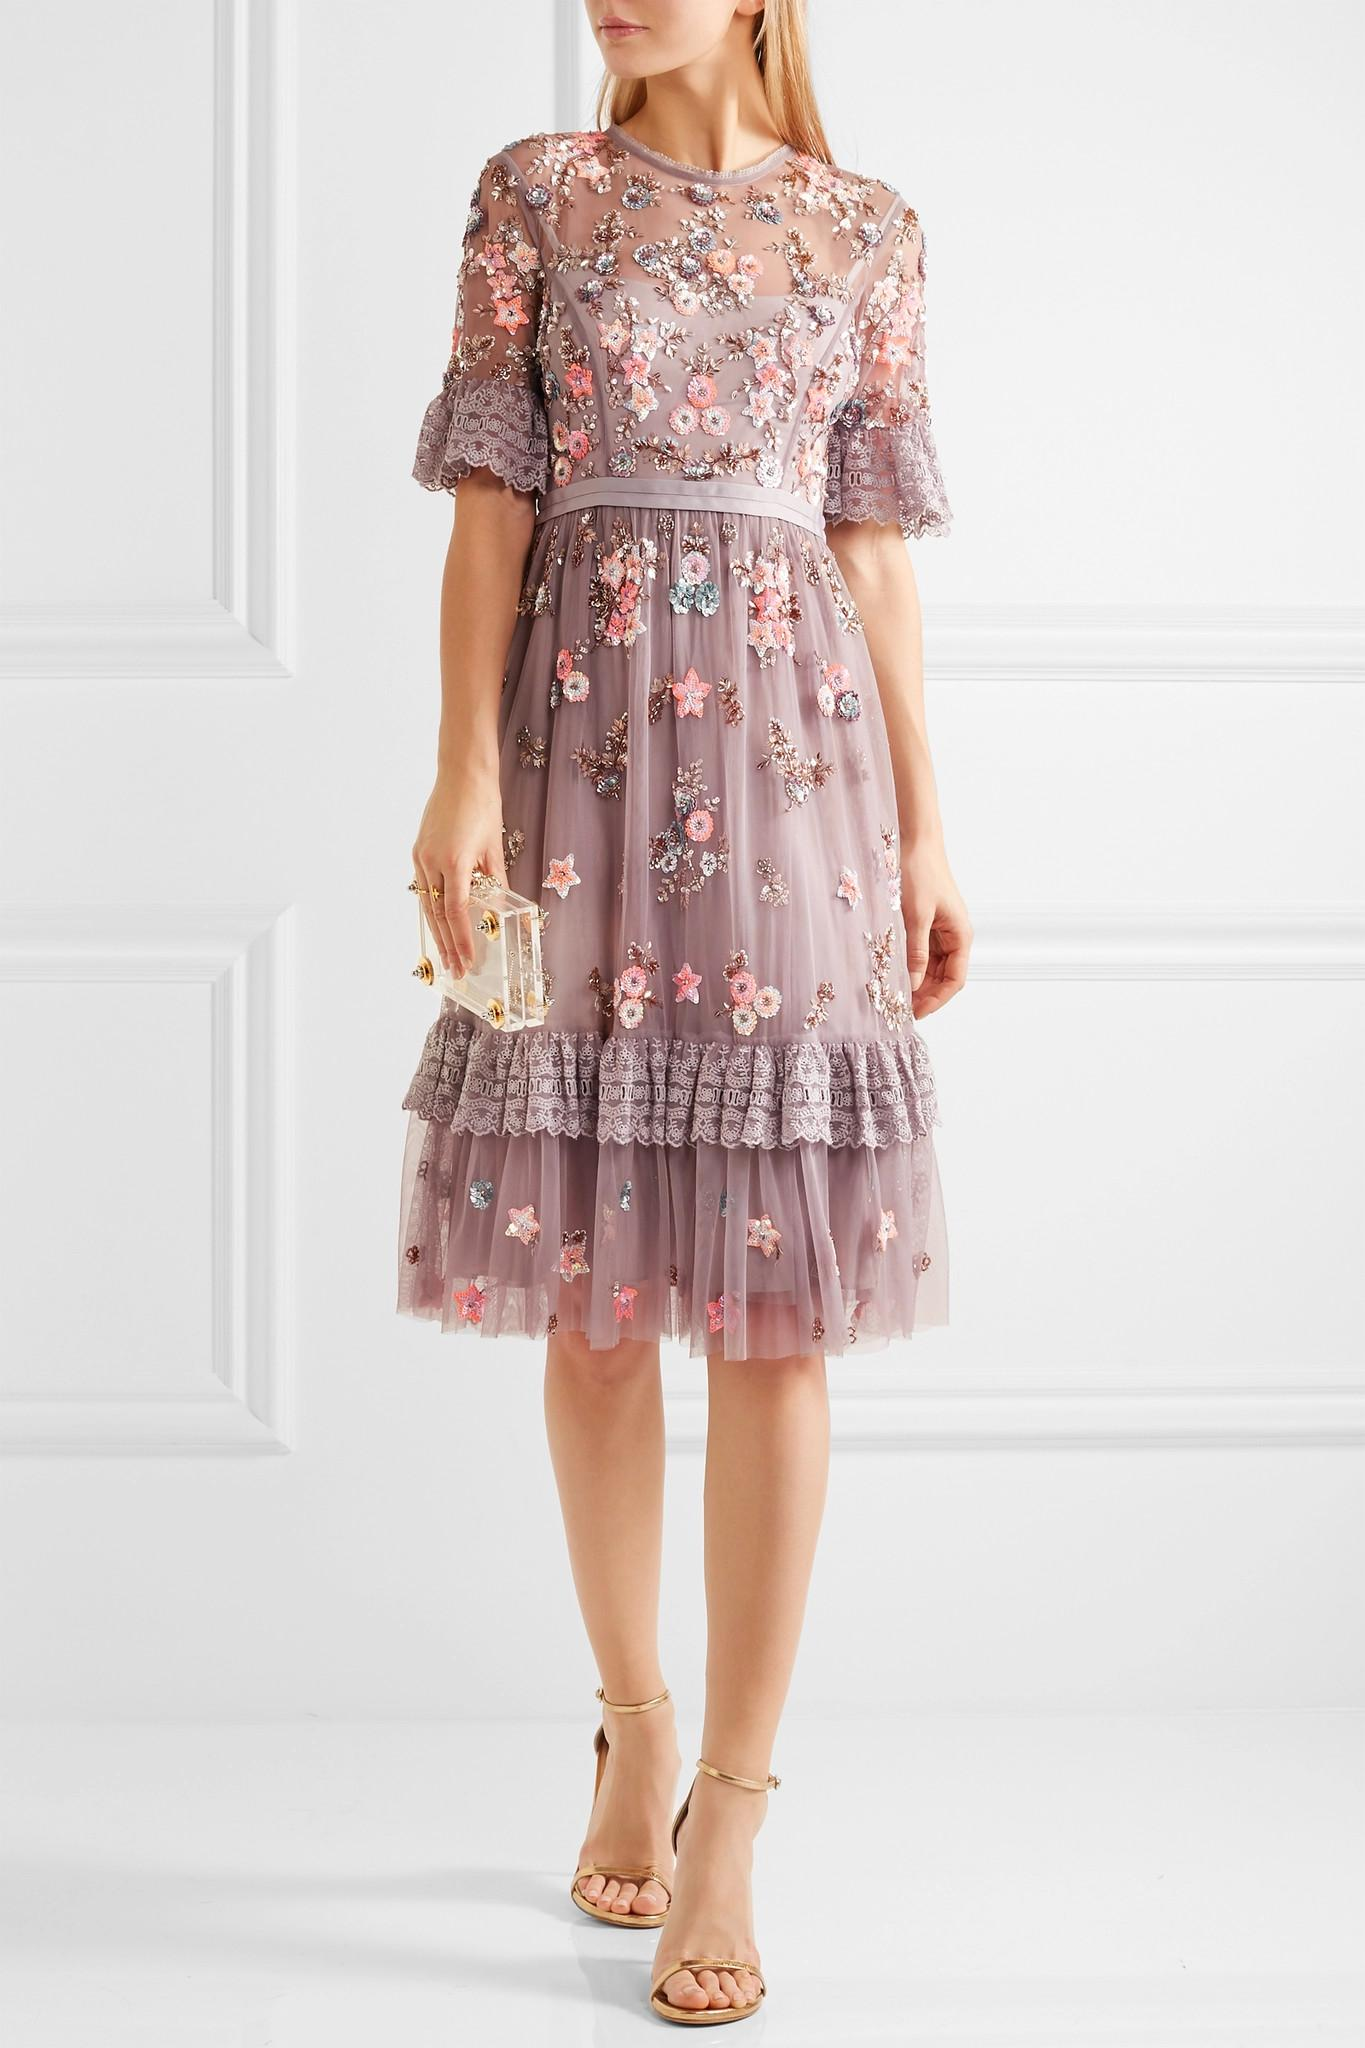 Needle Amp Thread Embellished Embroidered Tulle Dress In